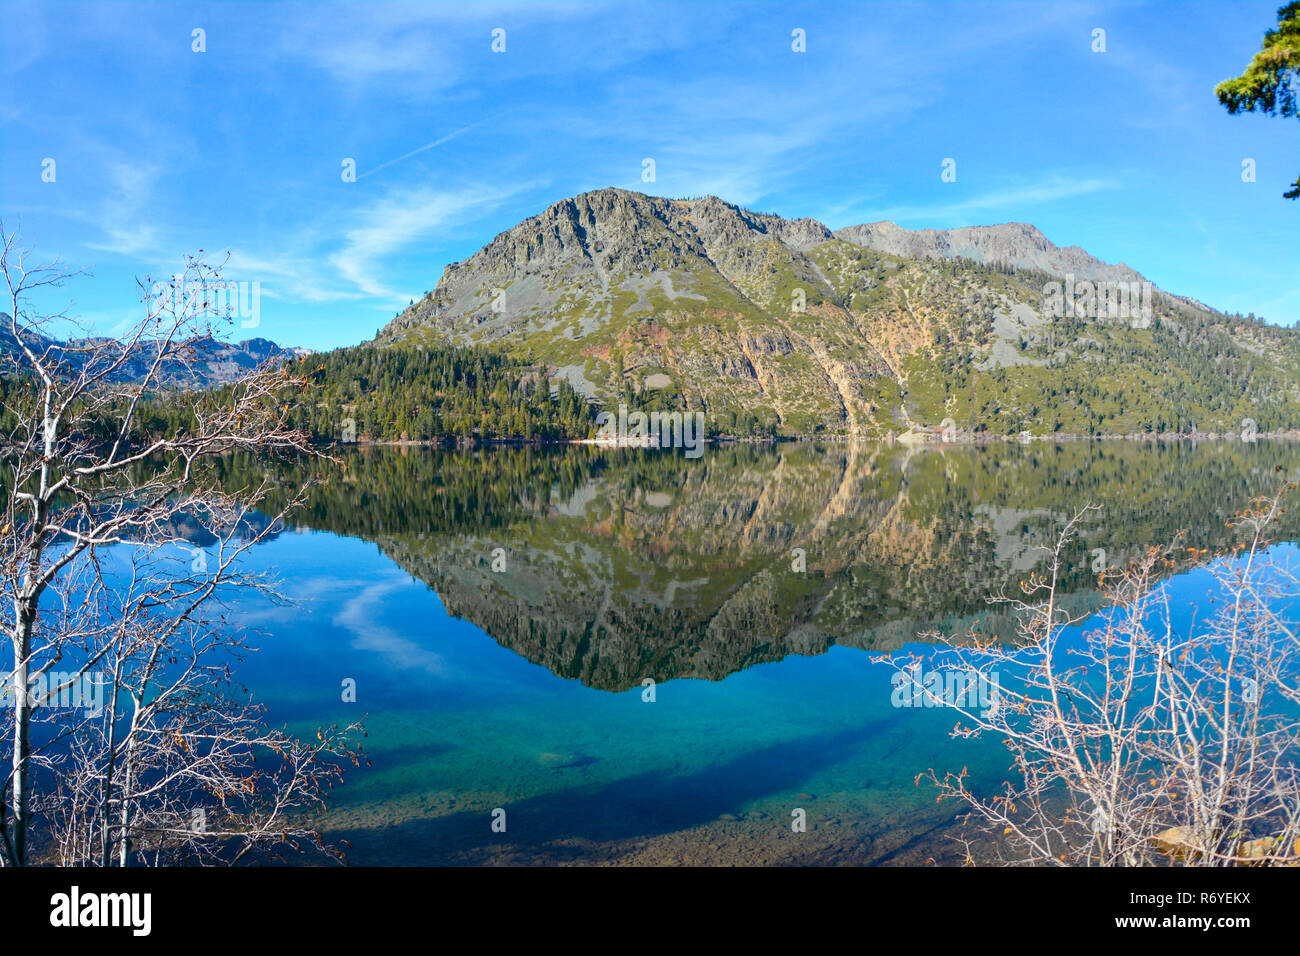 Mountain reflection on the water - Stock Image